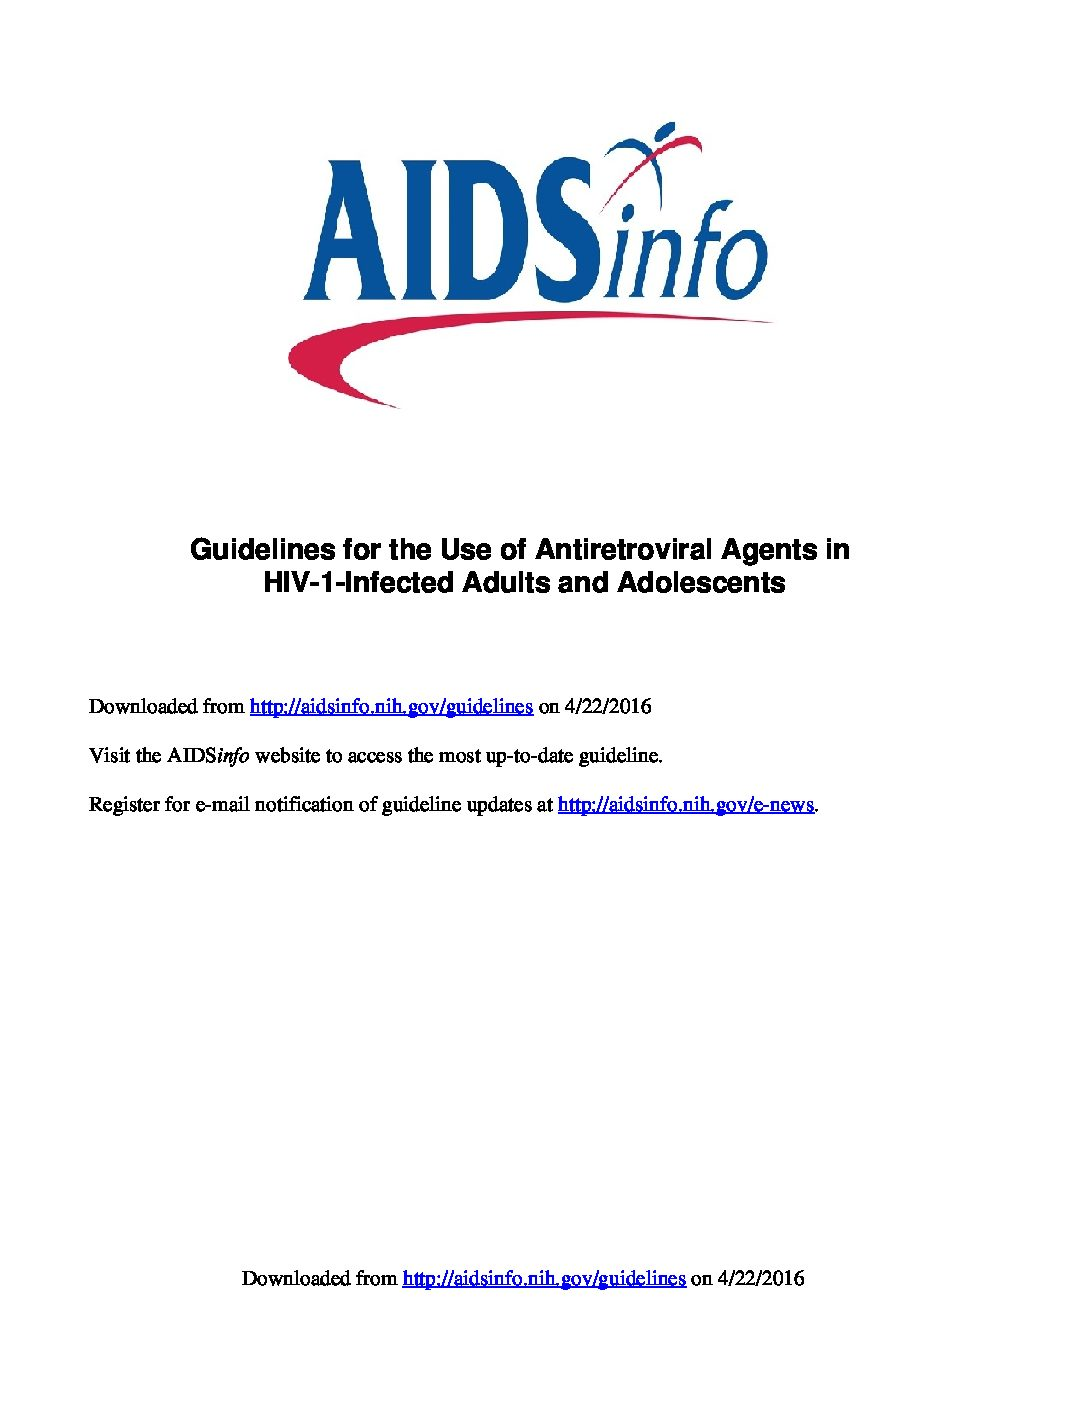 Guidelines for the use of antiretroviral agents in HIV-1-infected adults and adolescents.